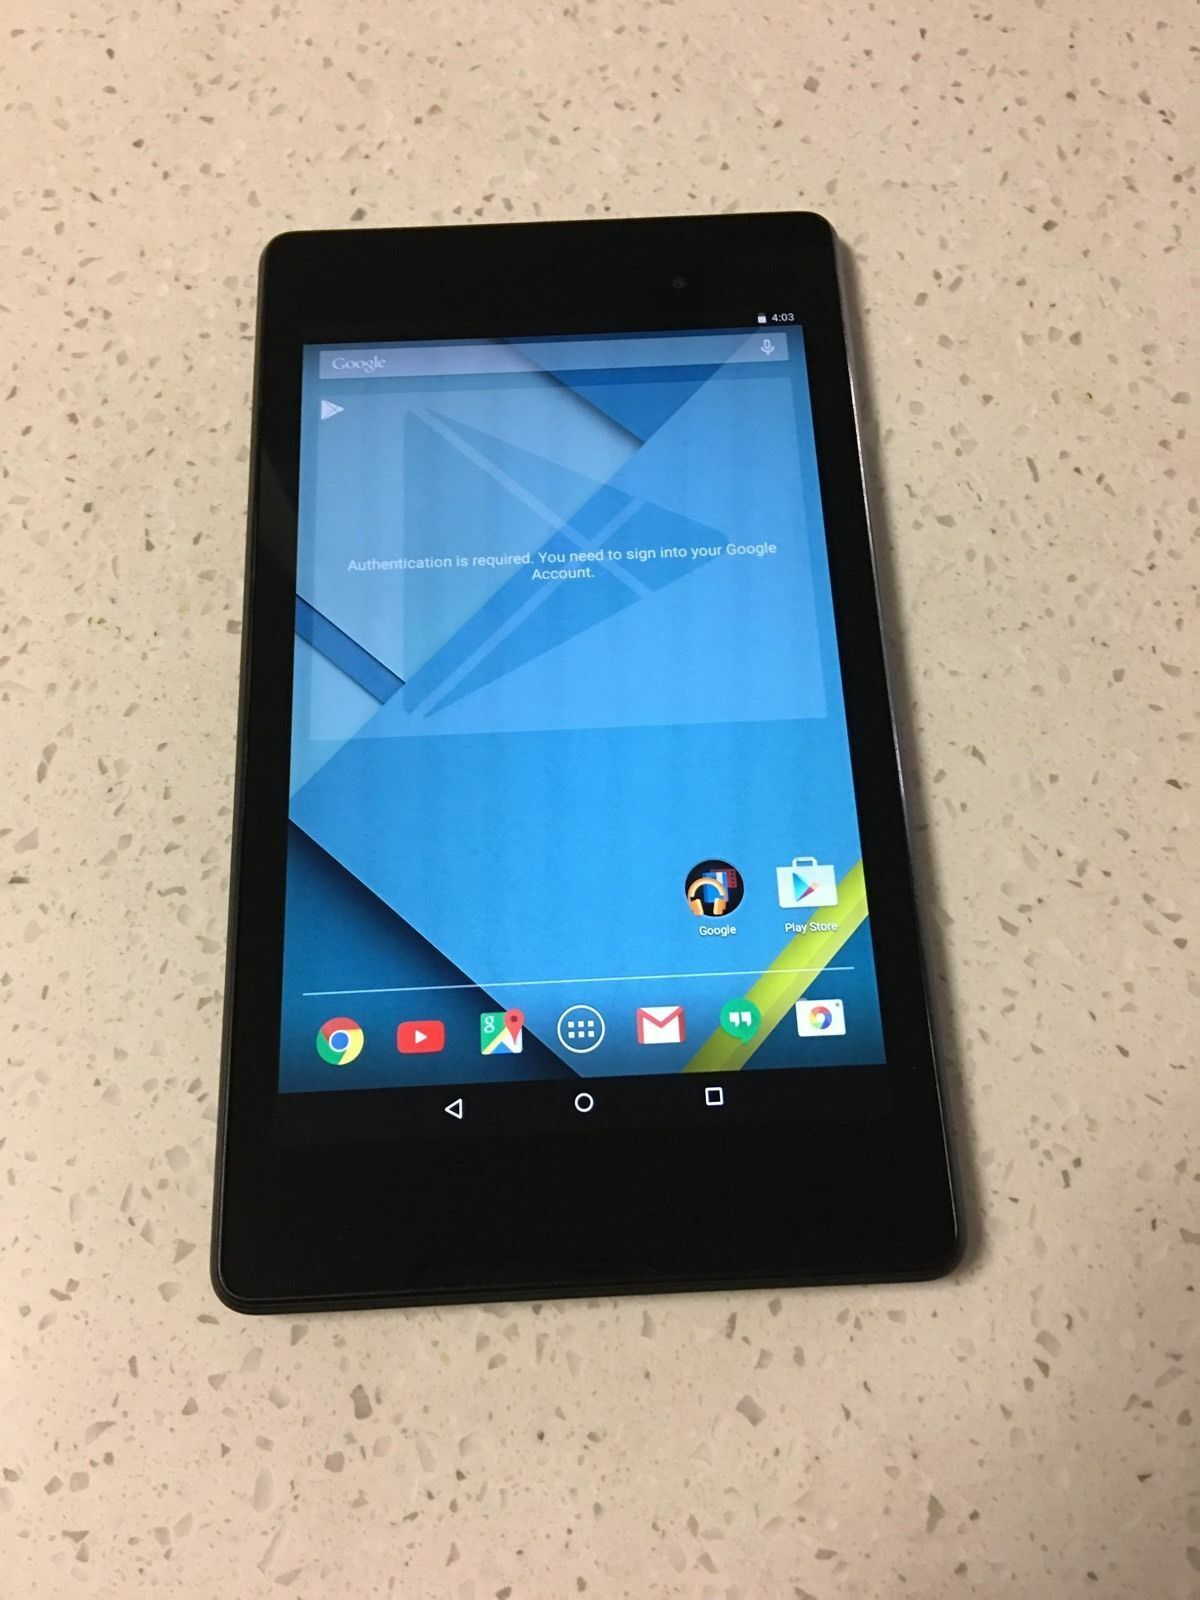 Asus Google Nexus 7 (2nd Generation) 16GB Wi-Fi 7in Tablet- Black